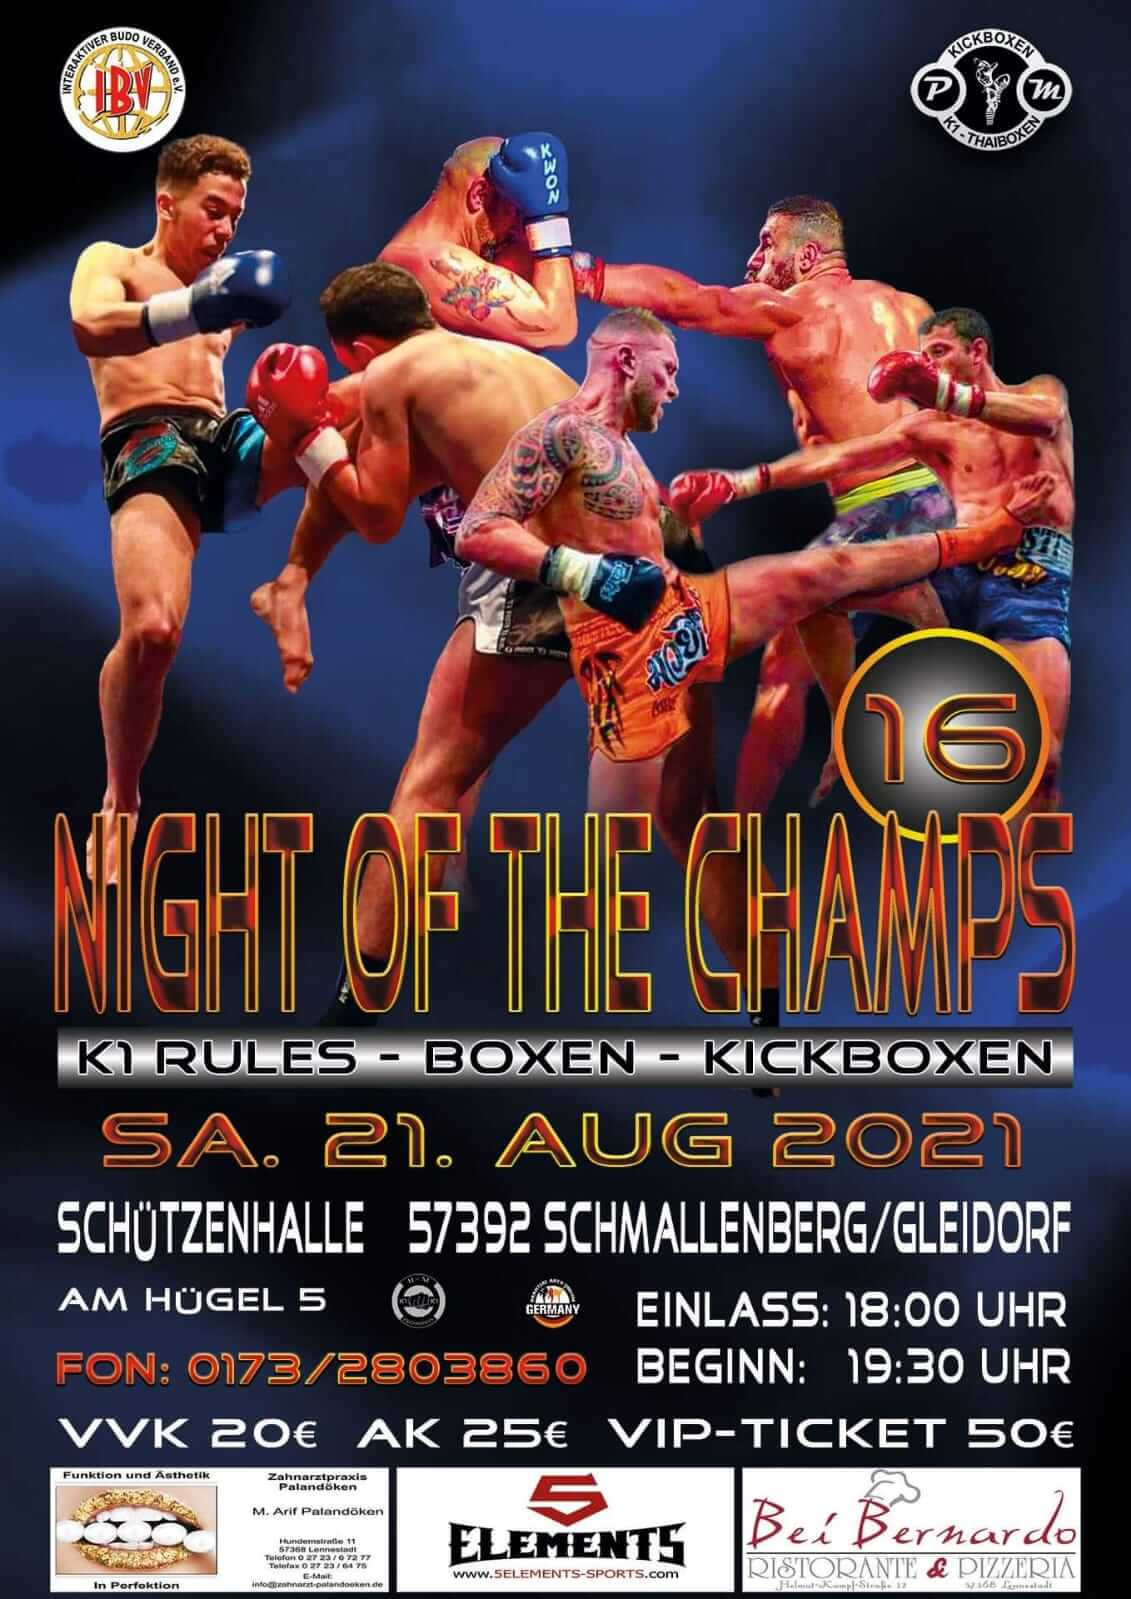 Night of the Champs Samstag 21 August 2021